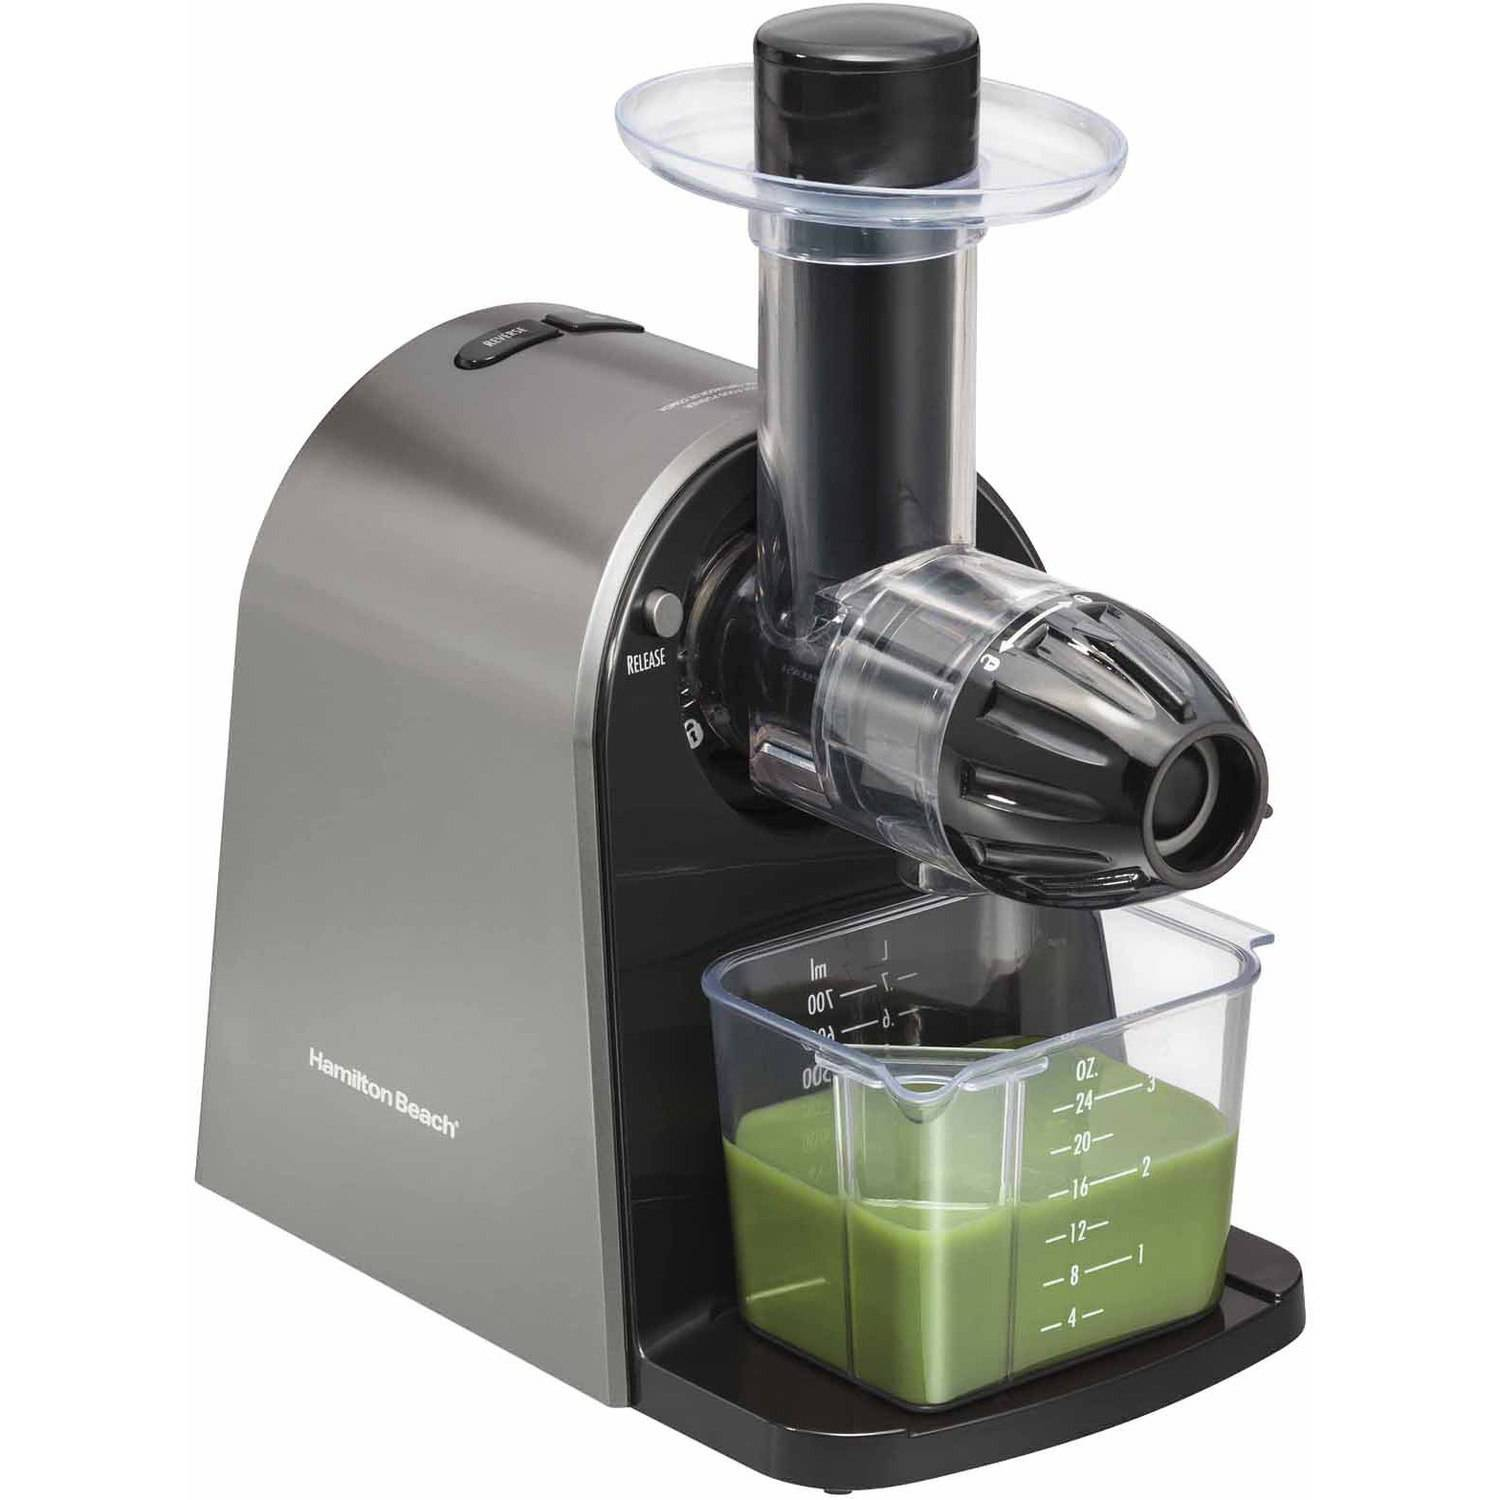 Which Slow Juicer Is Best : Cold Press Juicer Machine - Masticating Juicer Slow Juice ...